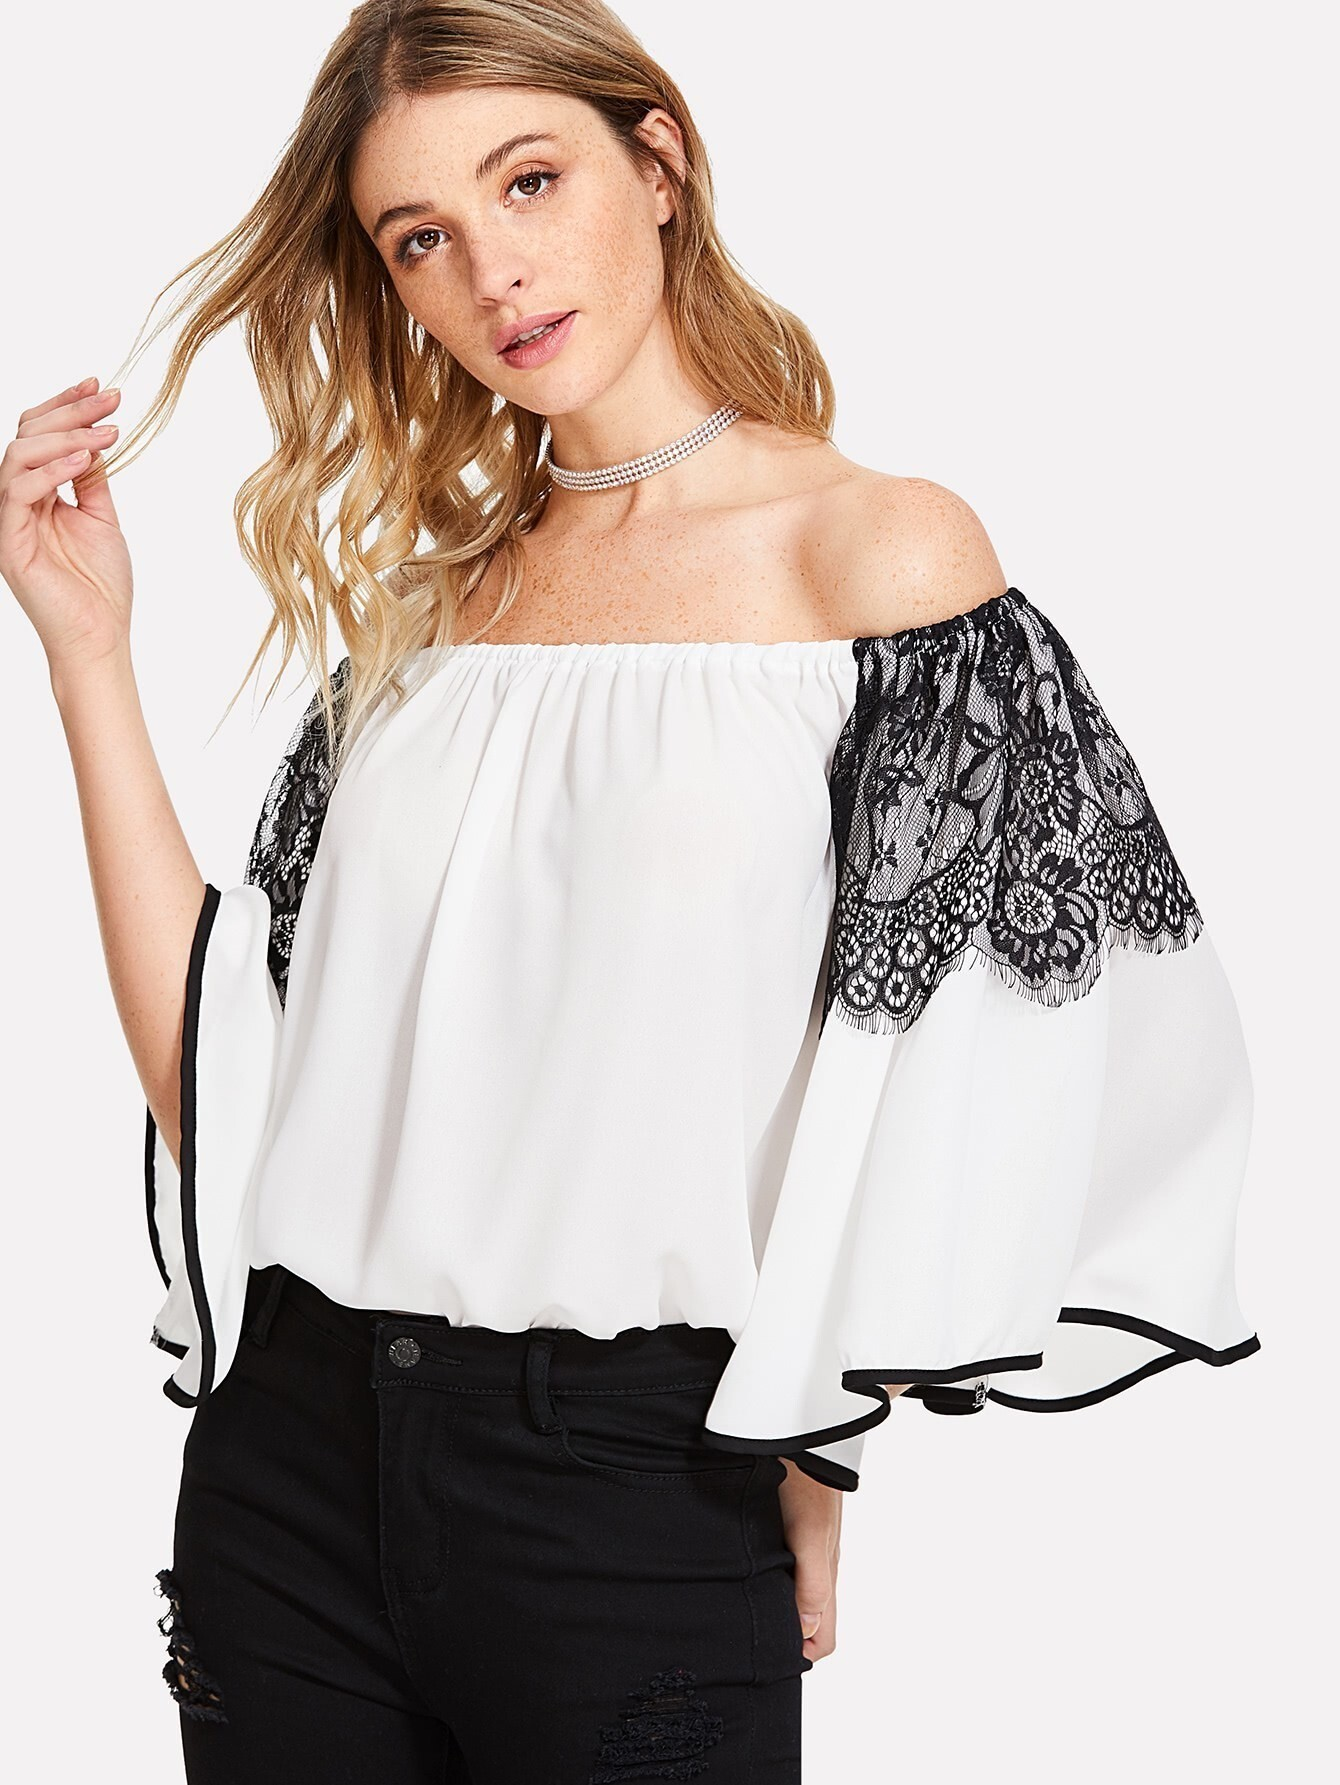 Lace Detail Contrast Binding Bardot Top v notch faux feather detail bardot top